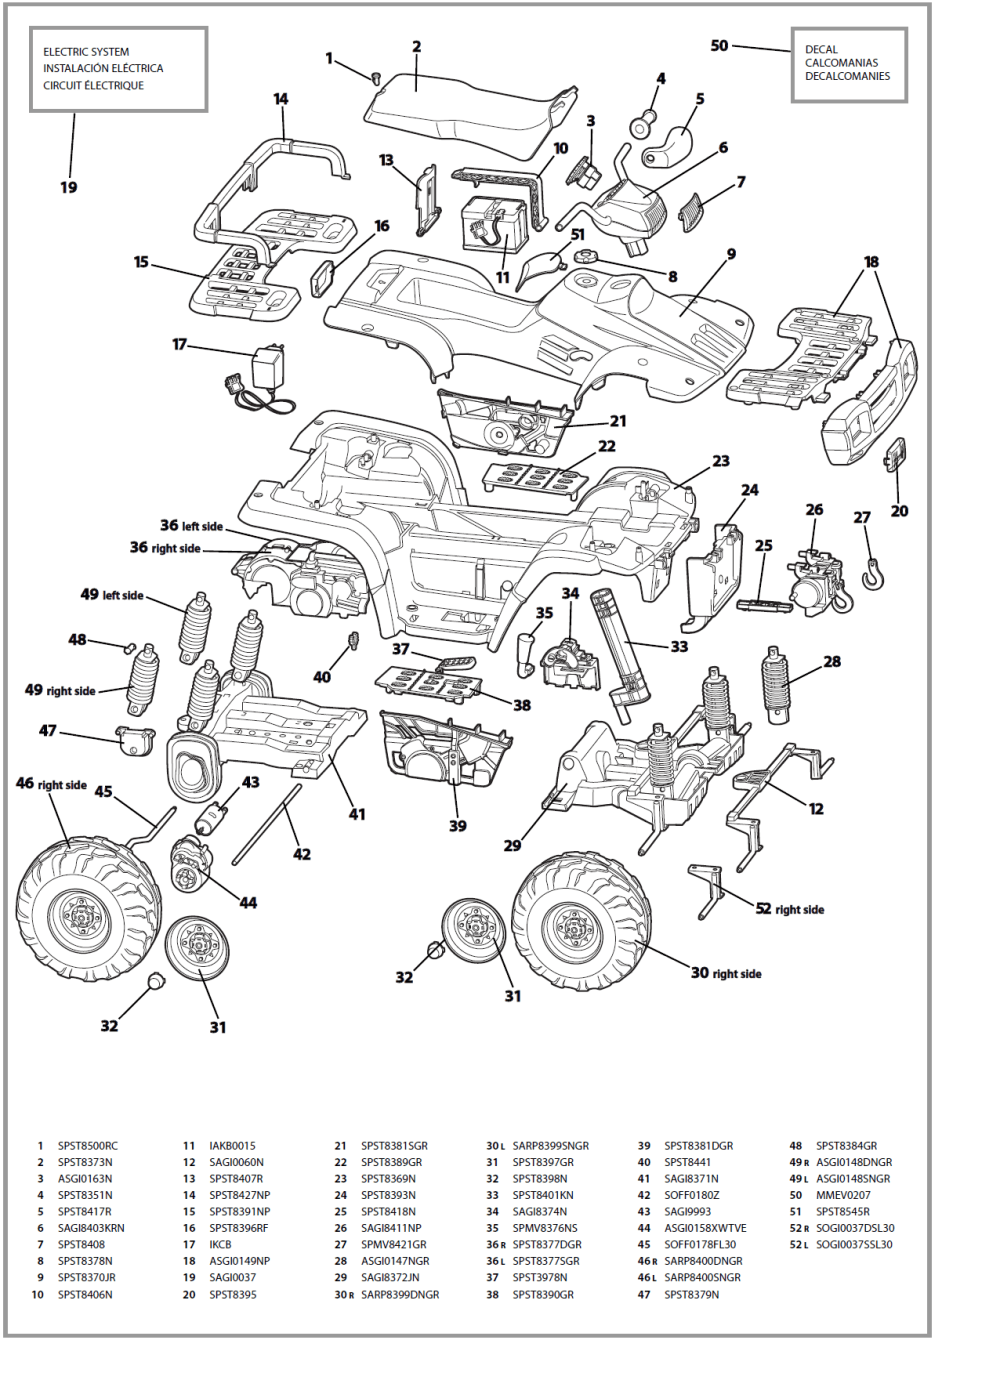 medium resolution of polaris ranger 700 4x4 wiring diagram polaris get free 2007 polaris 500 sportsman wiring diagram 1999 polaris sportsman 500 wiring diagram